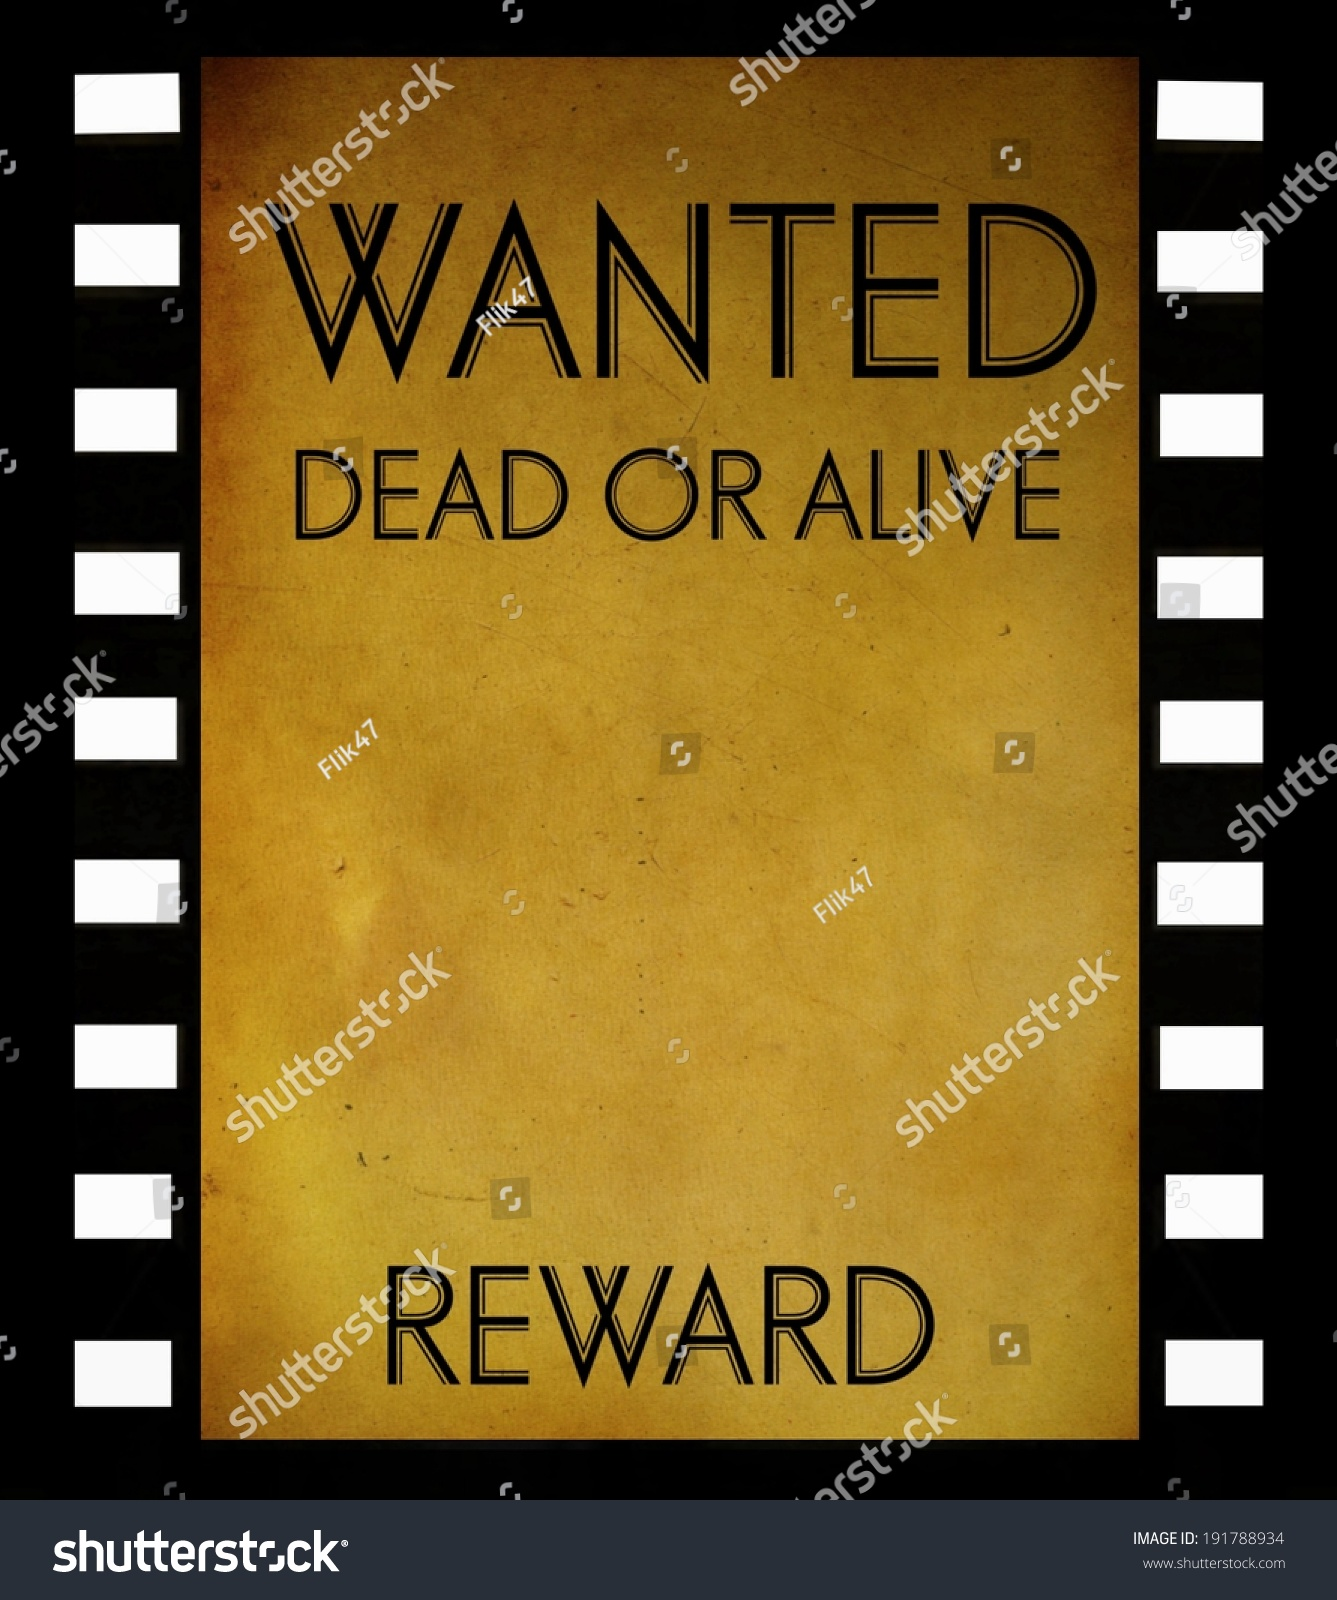 Vintage Wanted Poster Template On Film Stock Illustration 191788934